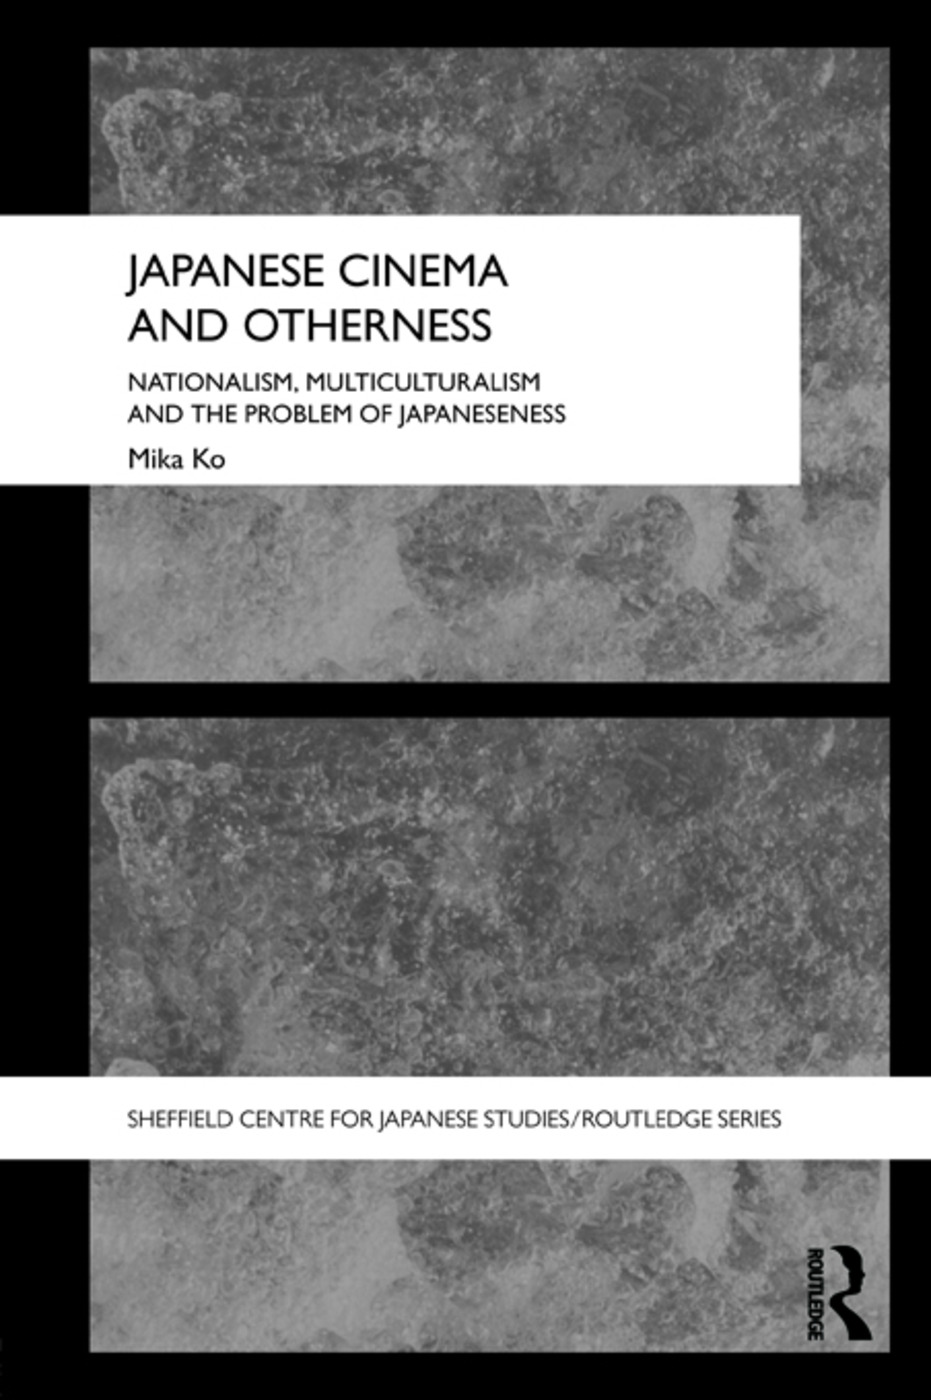 Japanese Cinema and Otherness: Nationalism, Multiculturalism and the Problem of Japaneseness book cover